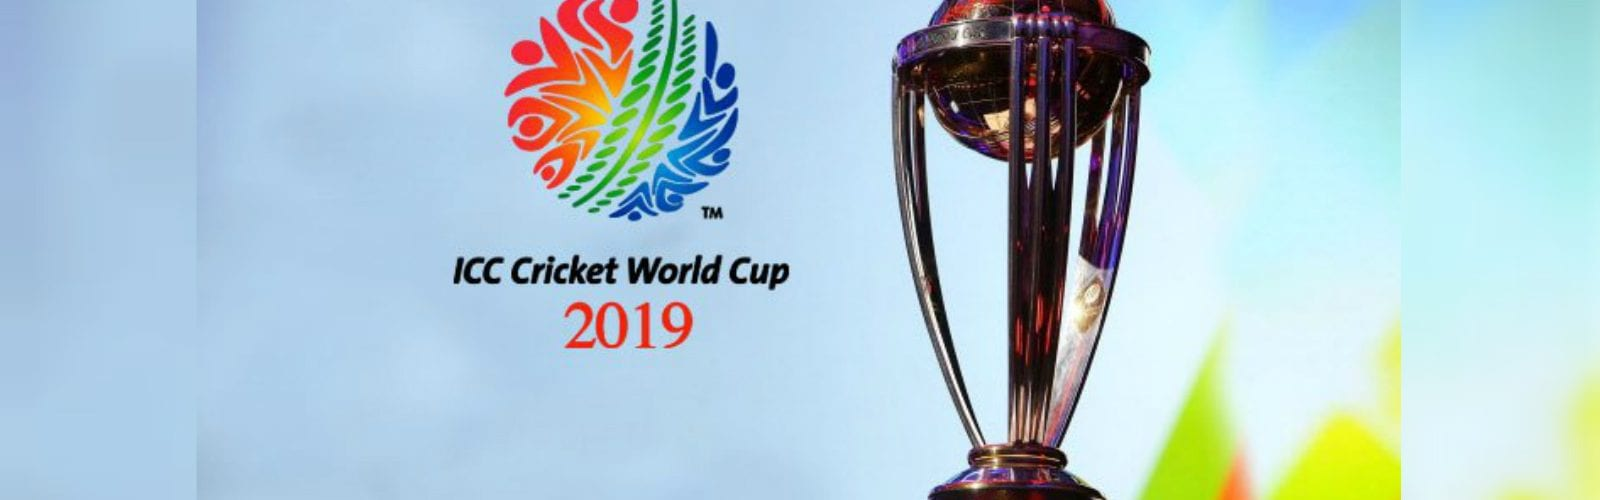 Fans Frustrated Over Cricket World Cup Delays